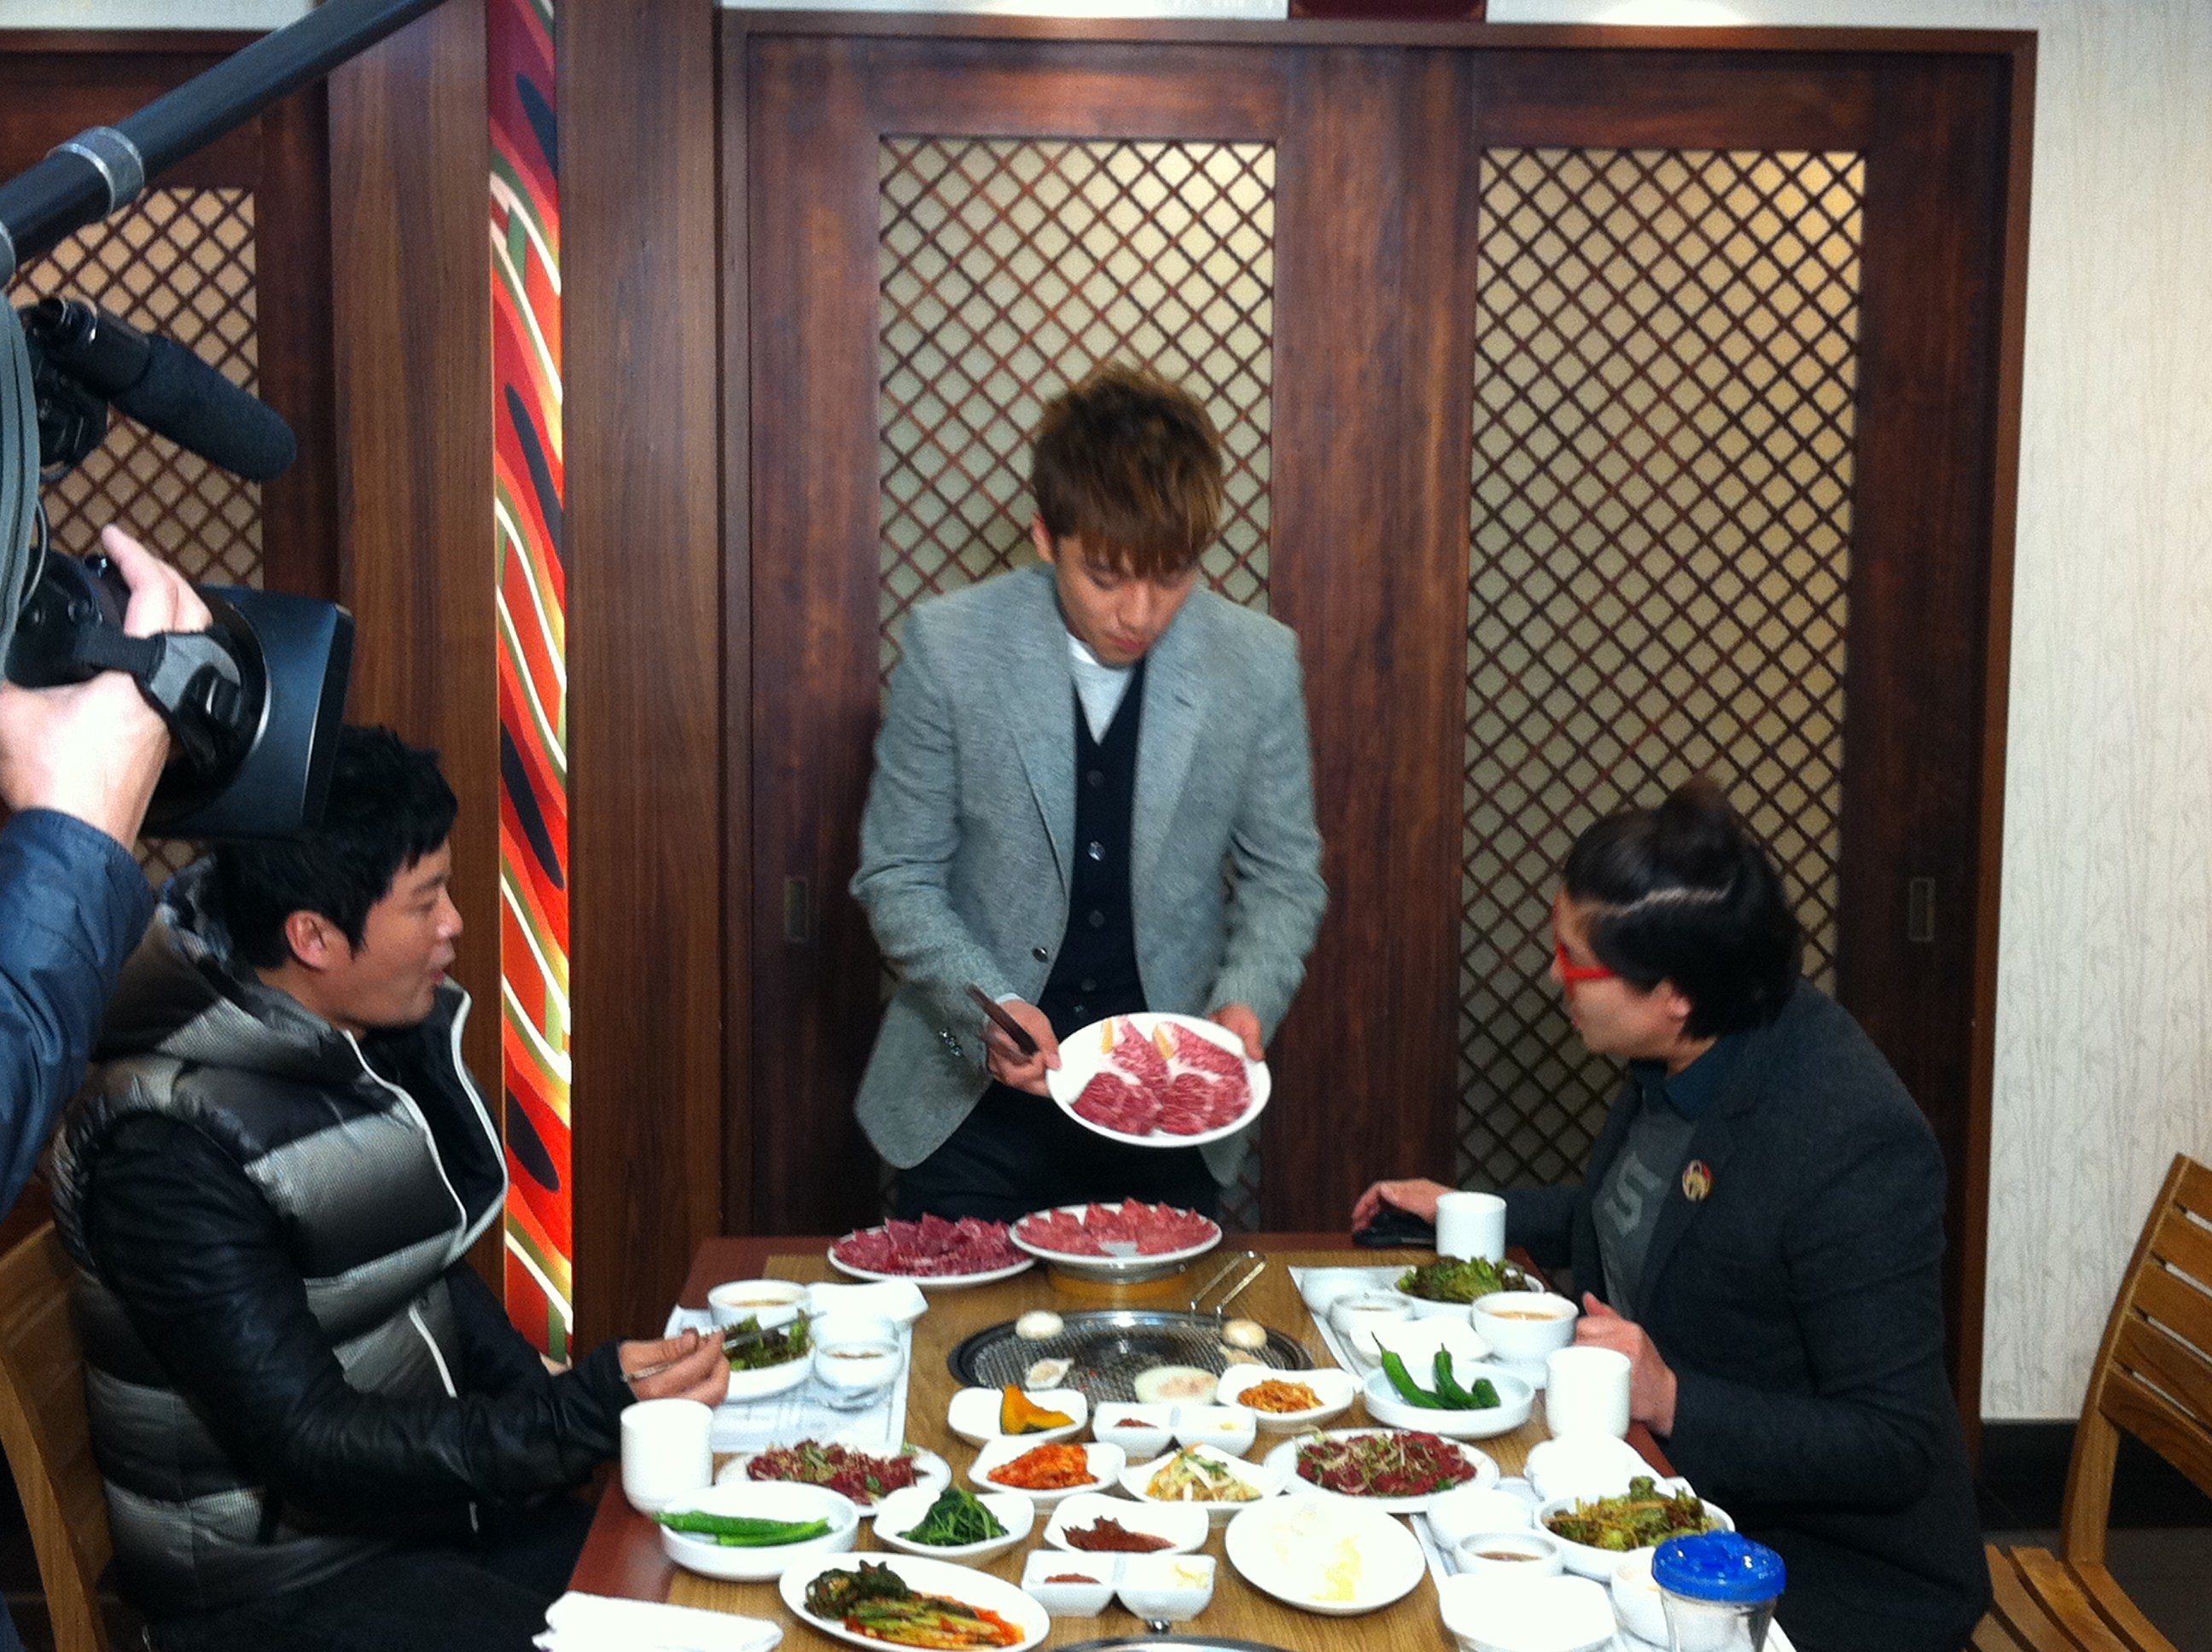 Seung Ri - tvN Taxi - Yeongcheon Younghwa Restaurant - 06feb2011 - 01.jpg